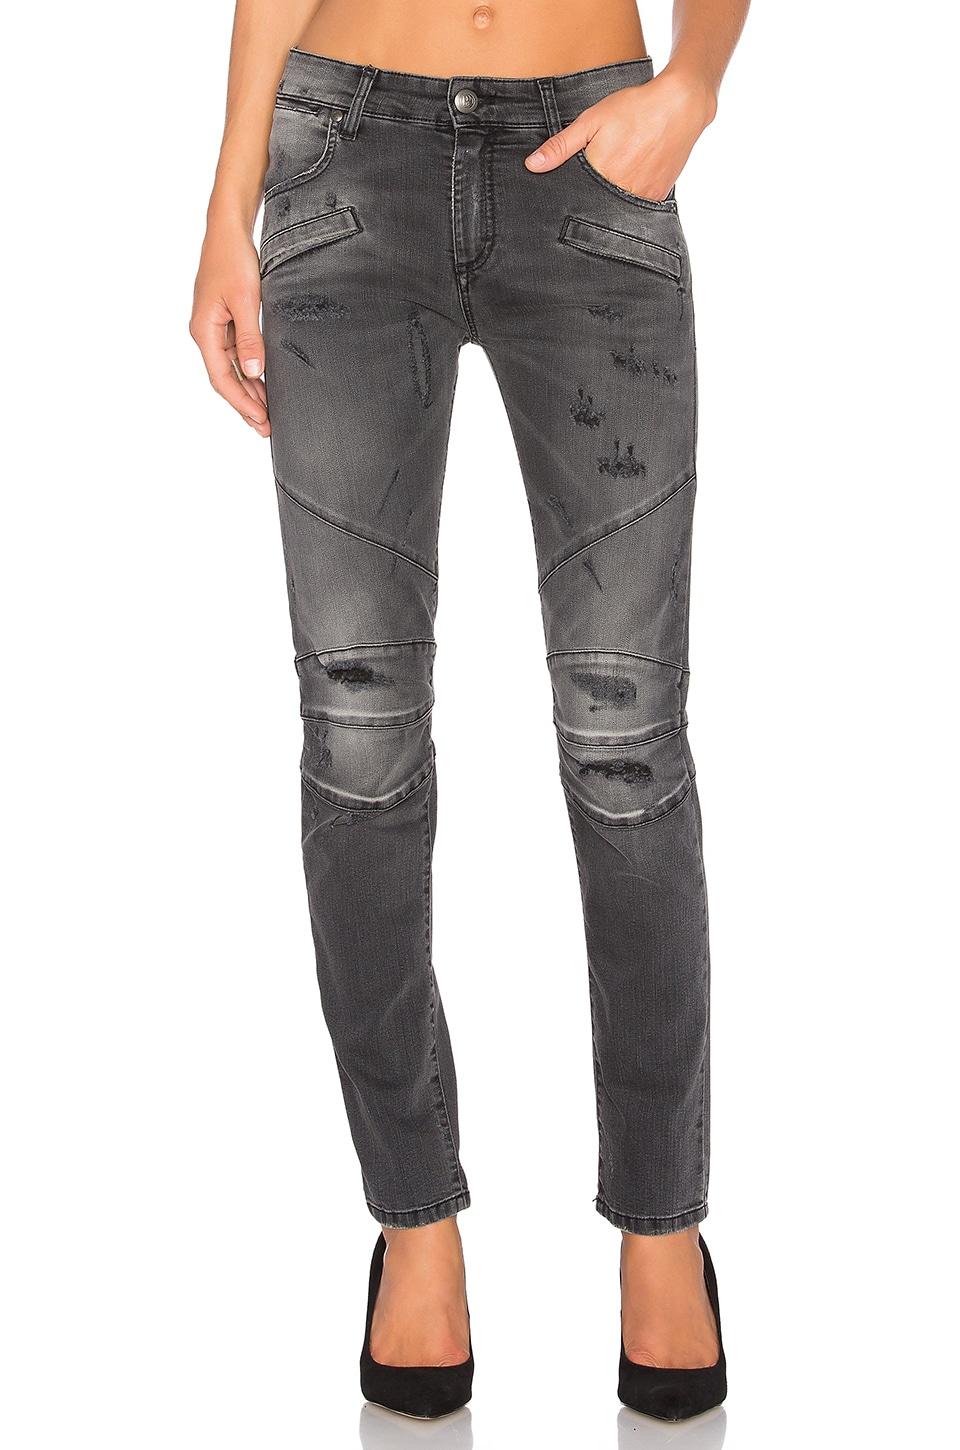 Pierre Balmain Moto Skinny Jean in Black Denim